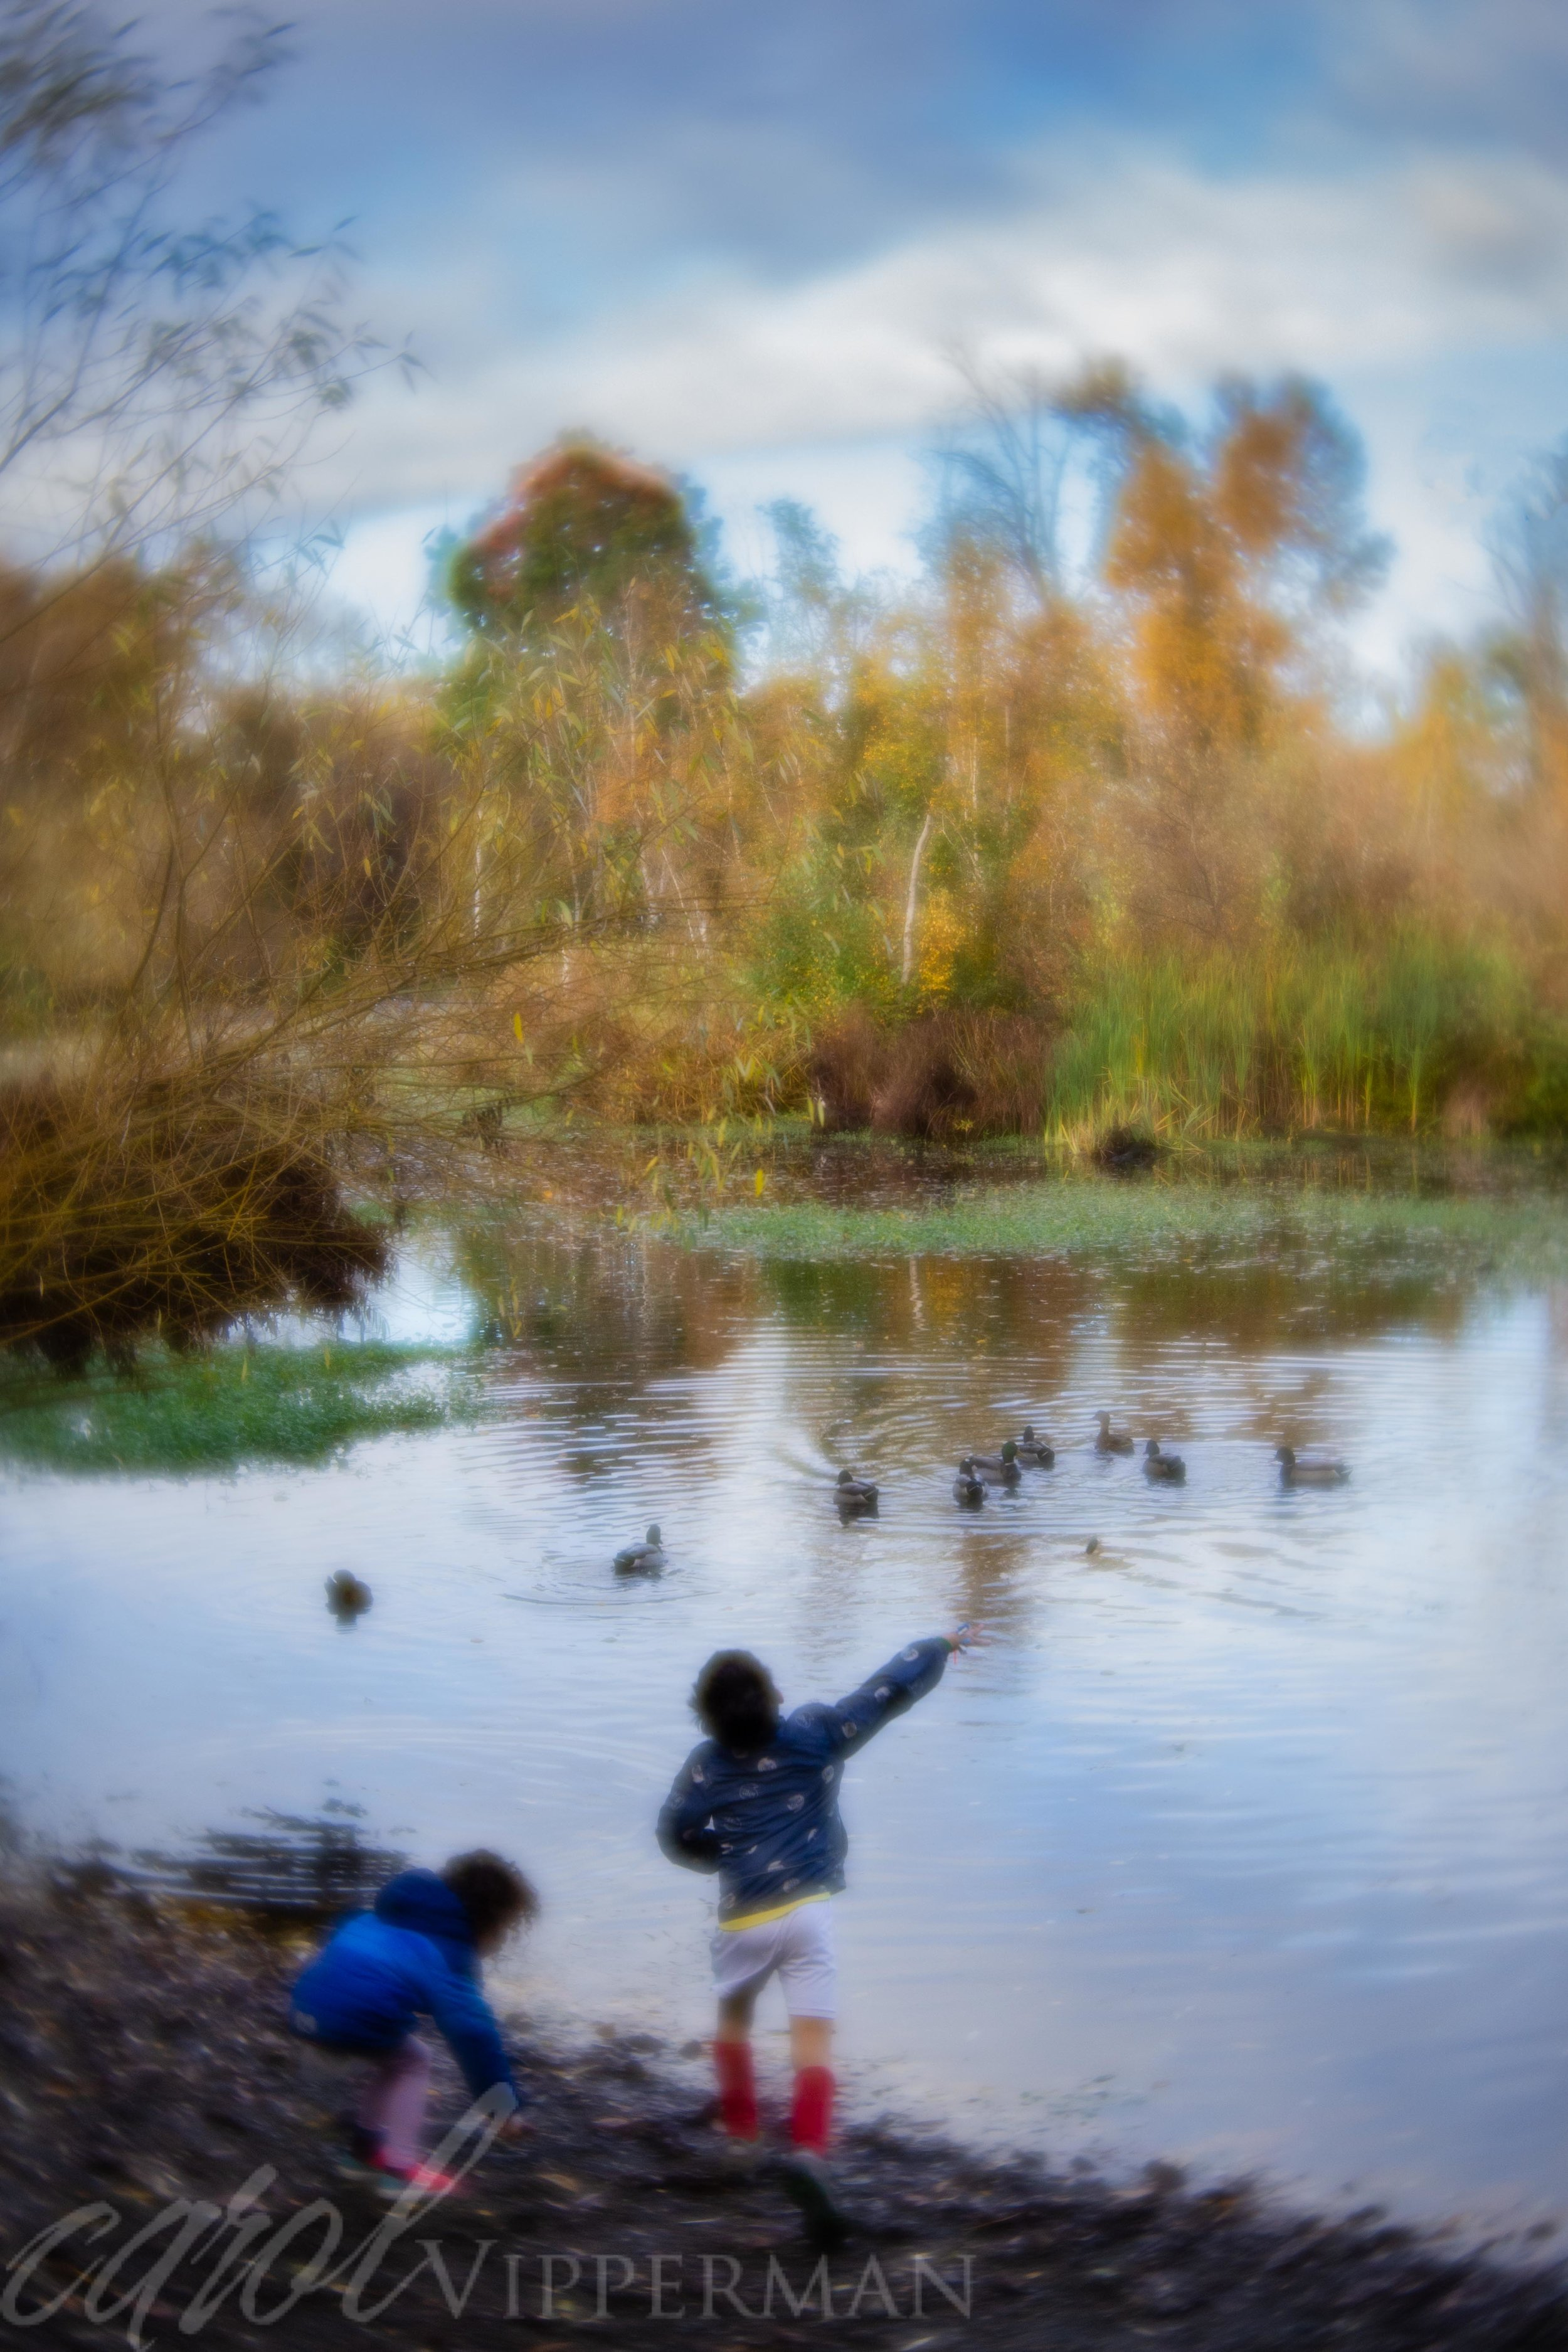 Children and ducks at play